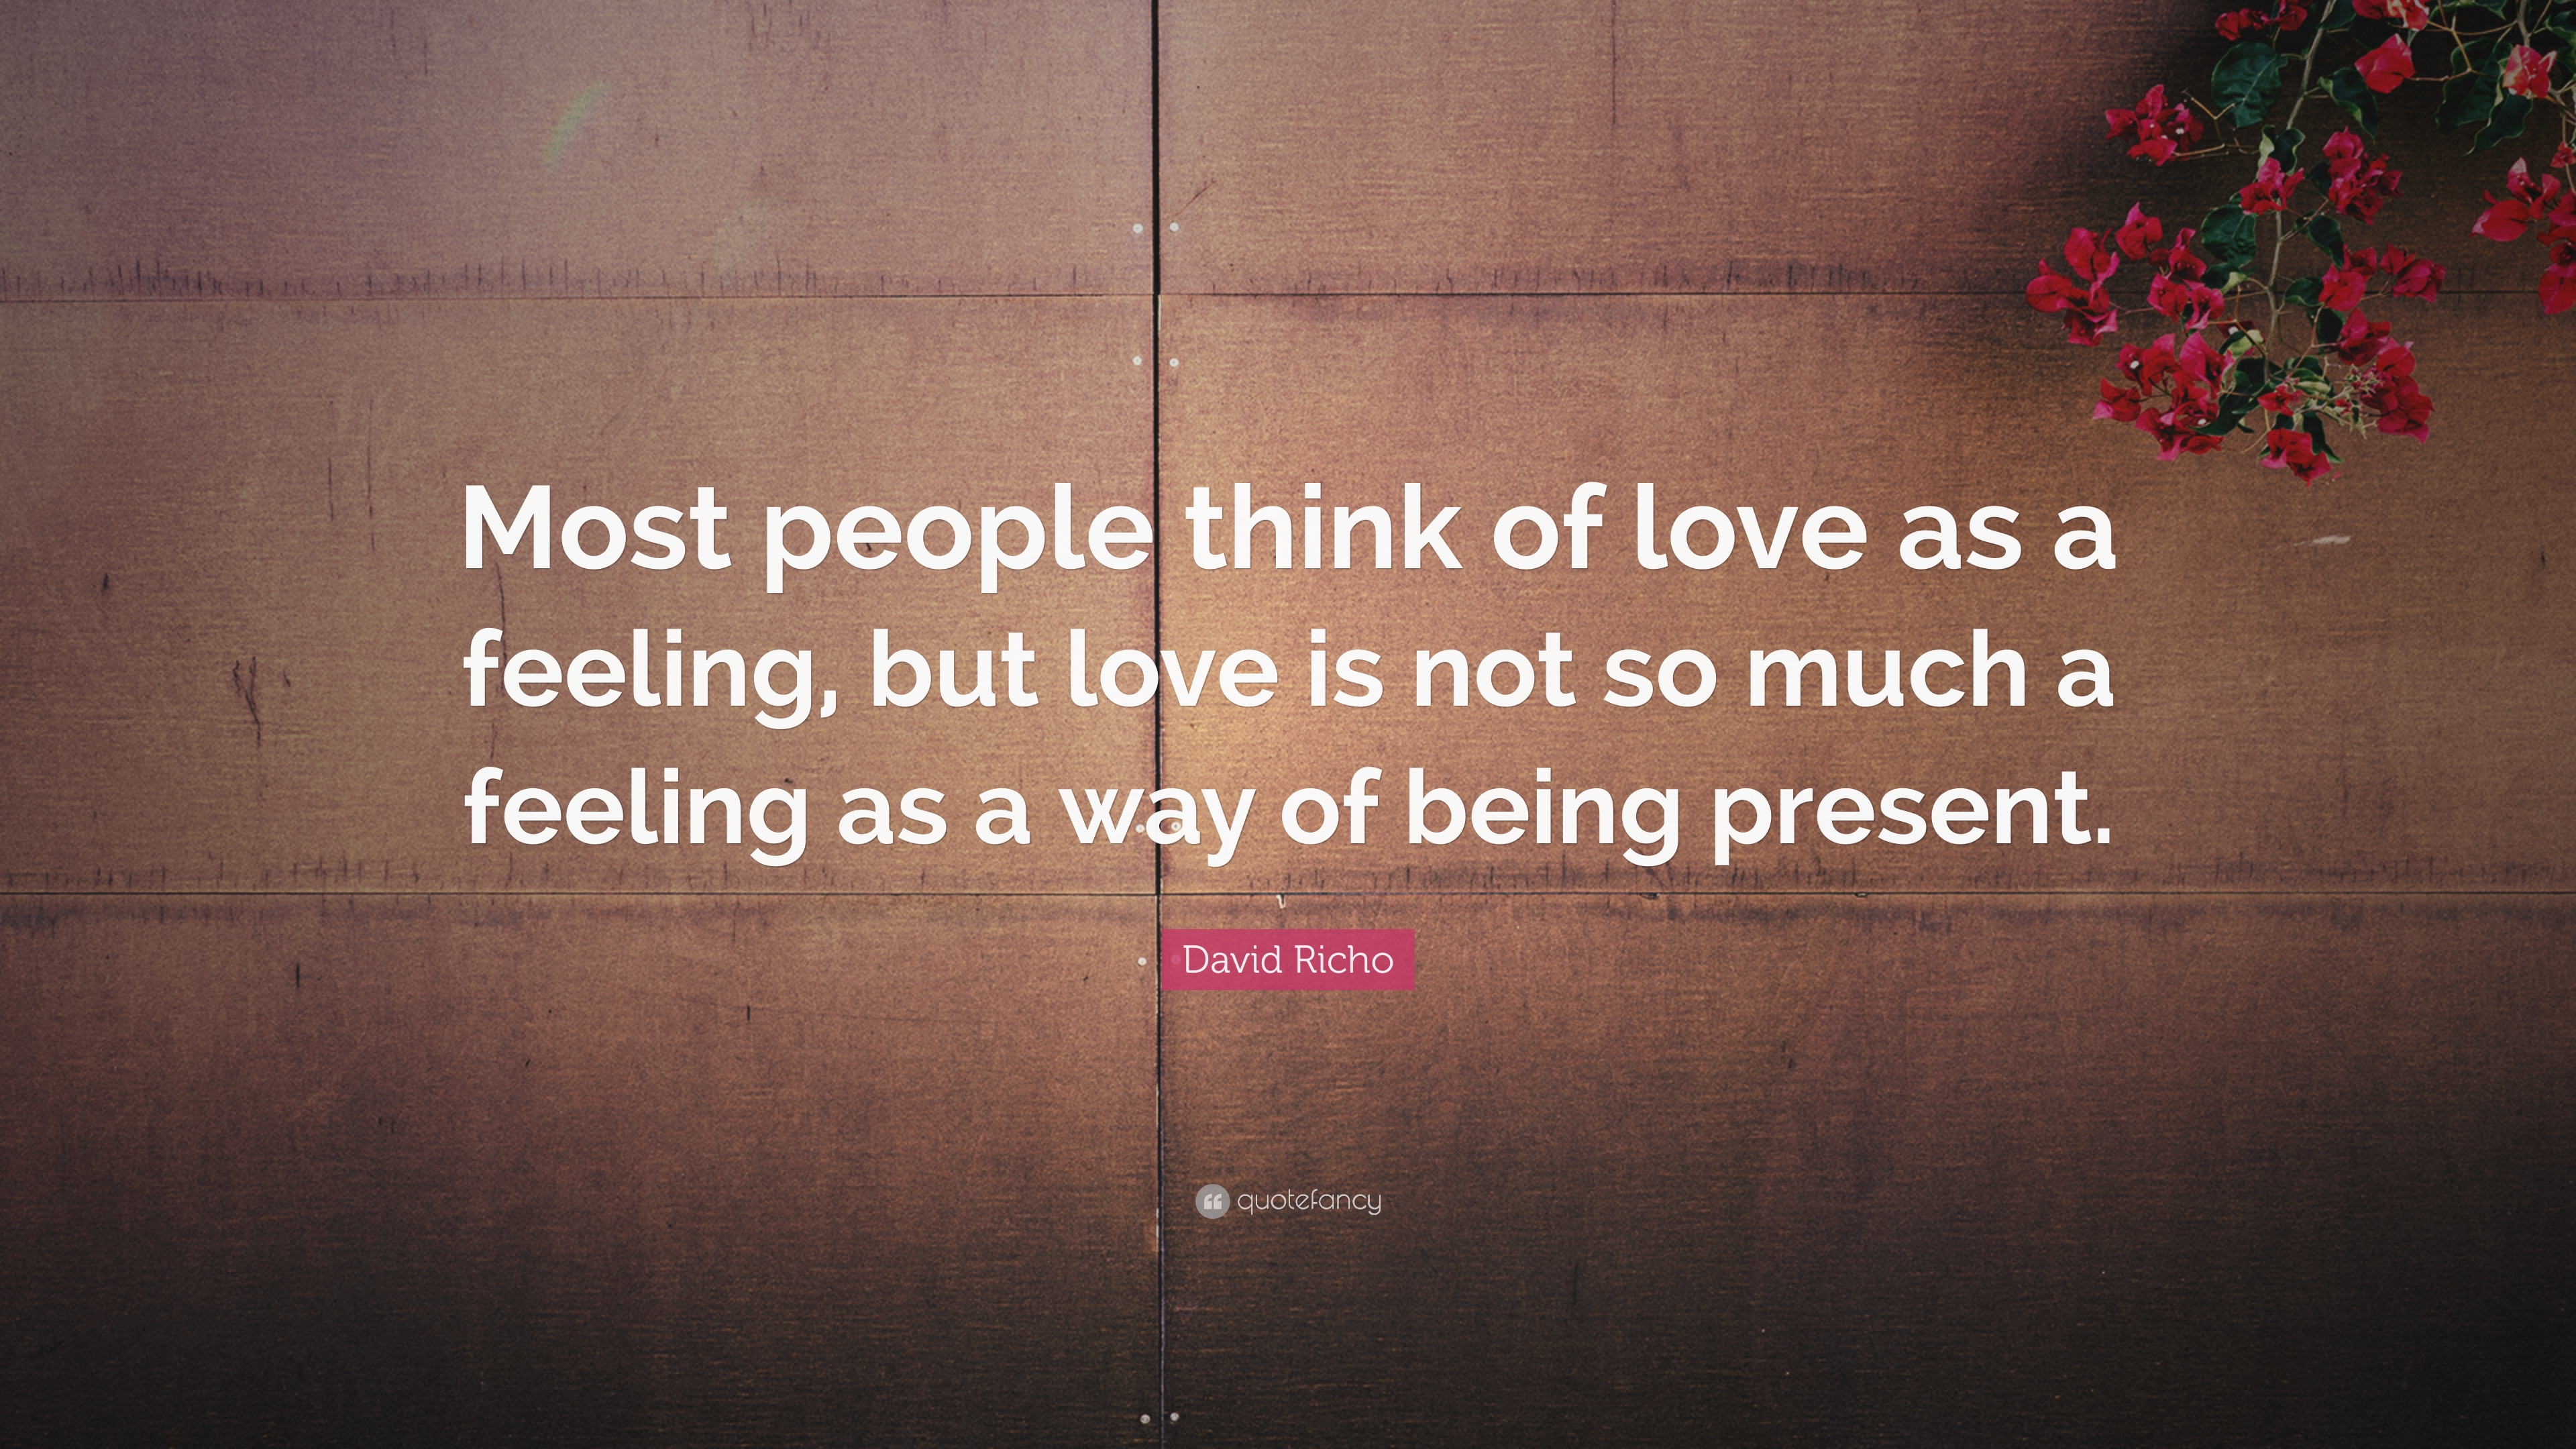 Love is present in most